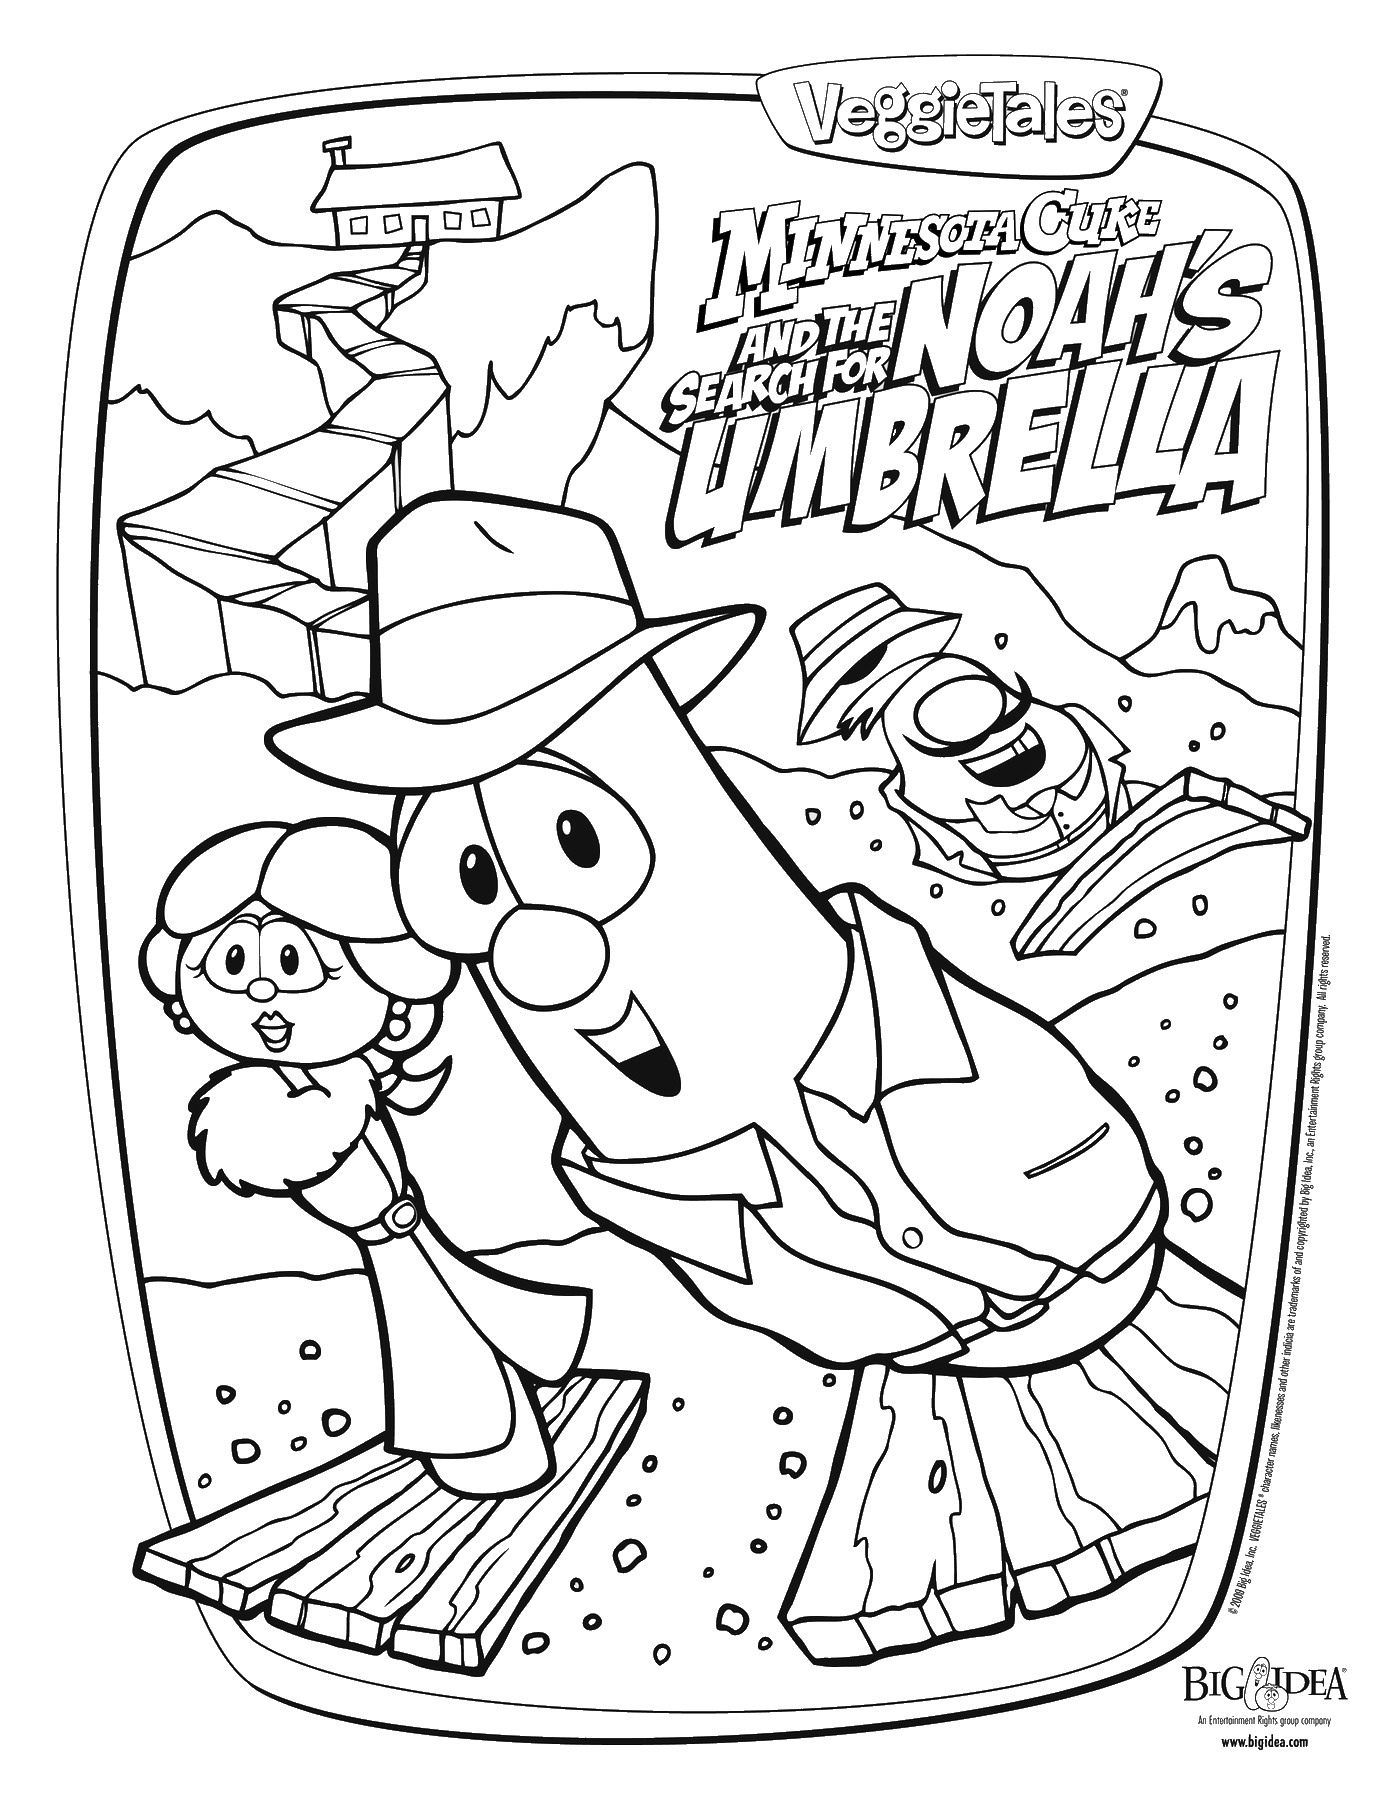 veggietales coloring pages free printable veggie tales coloring pages for kids pages veggietales coloring